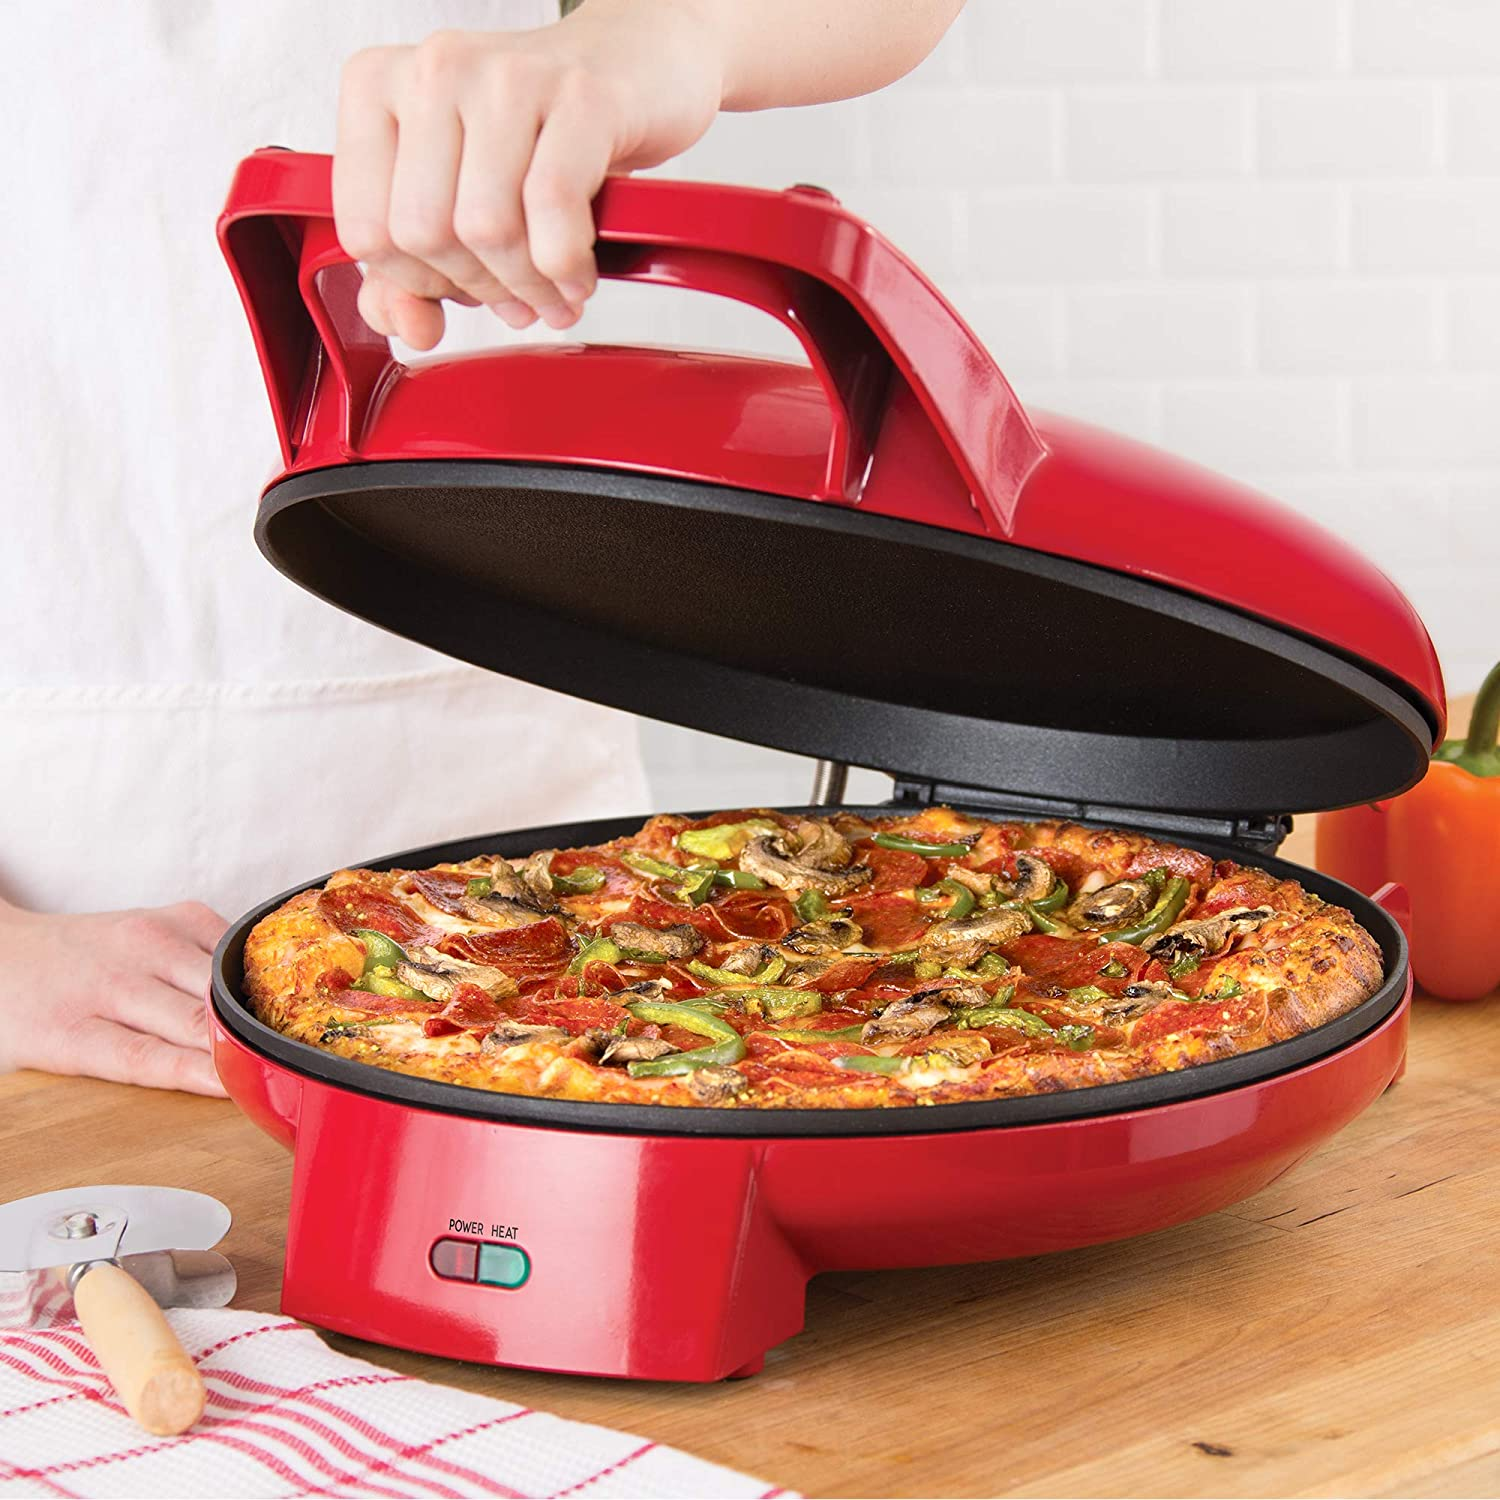 Cookies Breakfast /& More Red Fajitas Dash DPS001RR Double Up Compact Electric Skillet Hot Oven Cooker with Dual Cooking Pans Nonstick Indicator Light Recipe book for Pizza Burgers